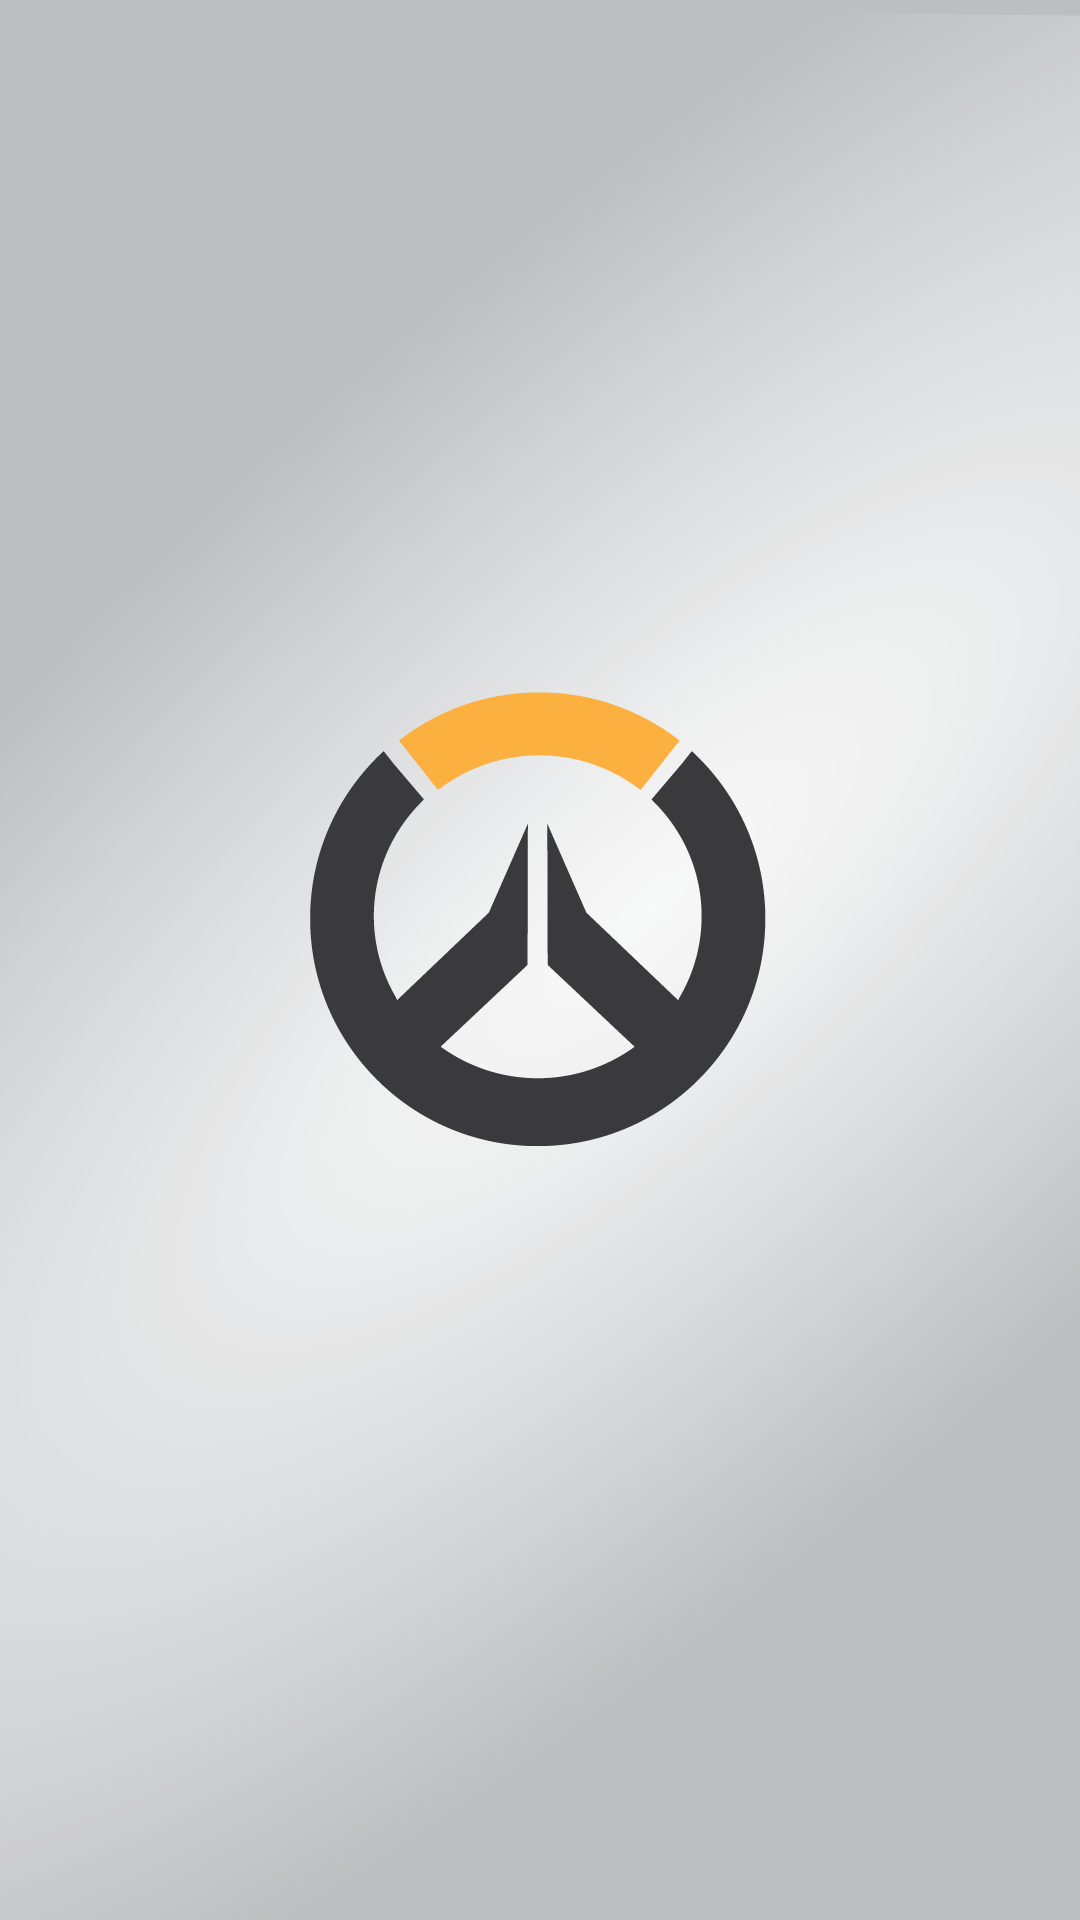 Overwatch Mobile Wallpaper Dump Overwatch mobile